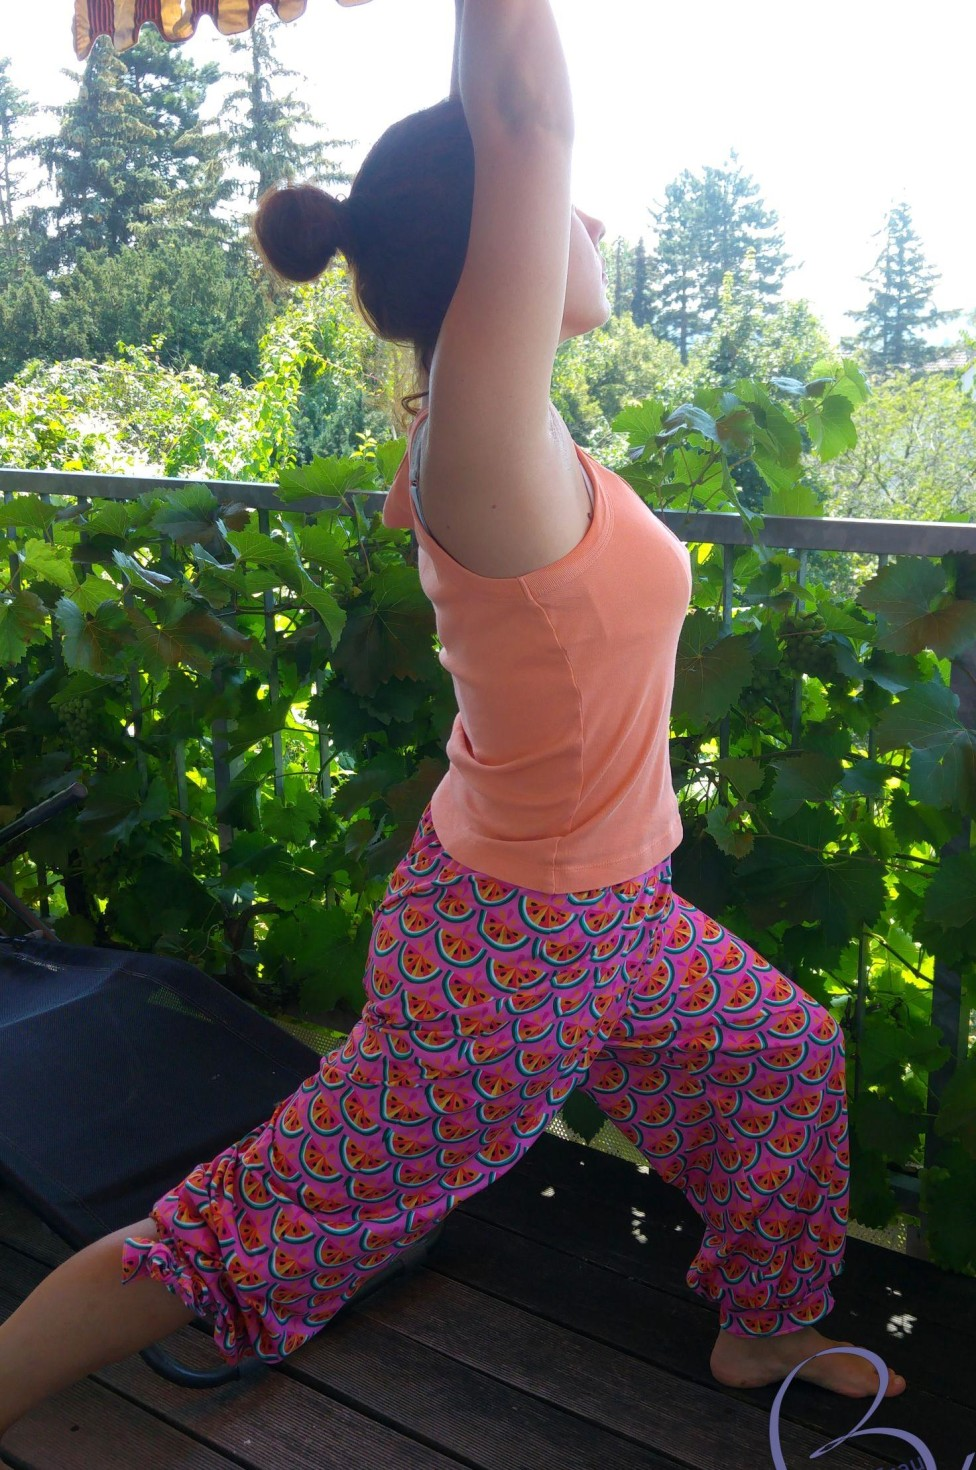 burda style Nutzerkreation Skylady Perfect Match: Summeryoga meets Melontropic